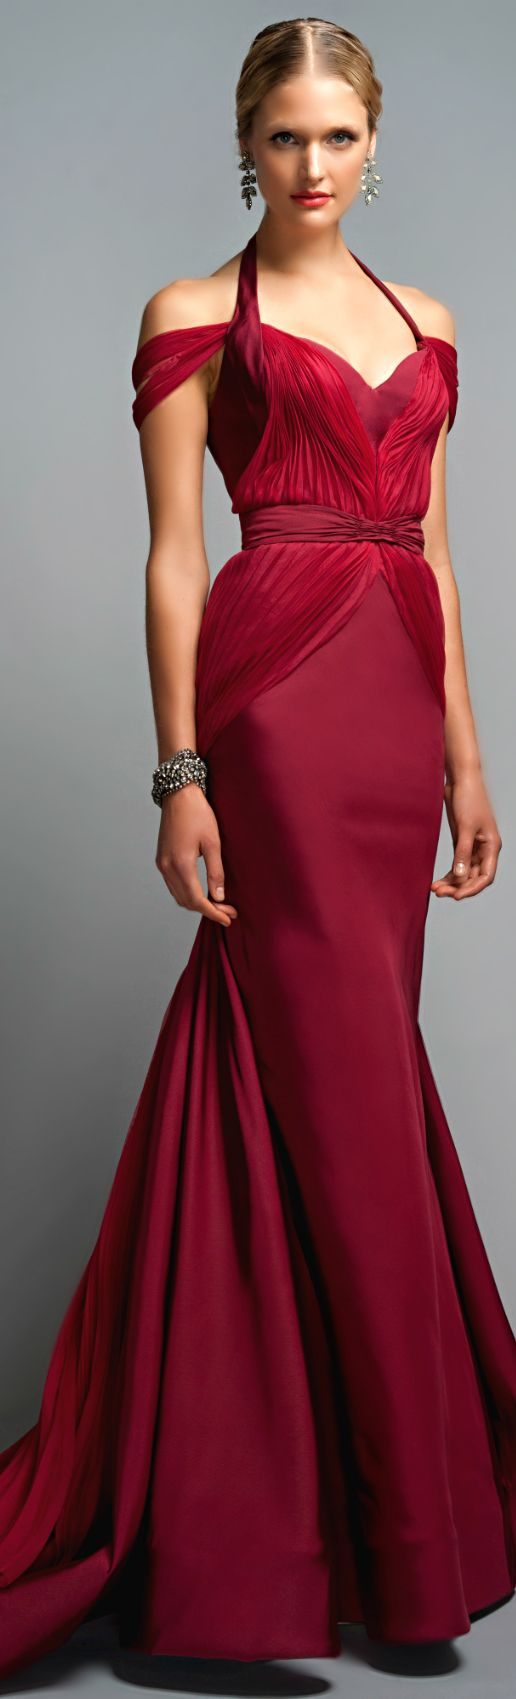 Long red dress for wedding  Zac Posen  vestidos  Pinterest  Zac posen Gowns and Eye